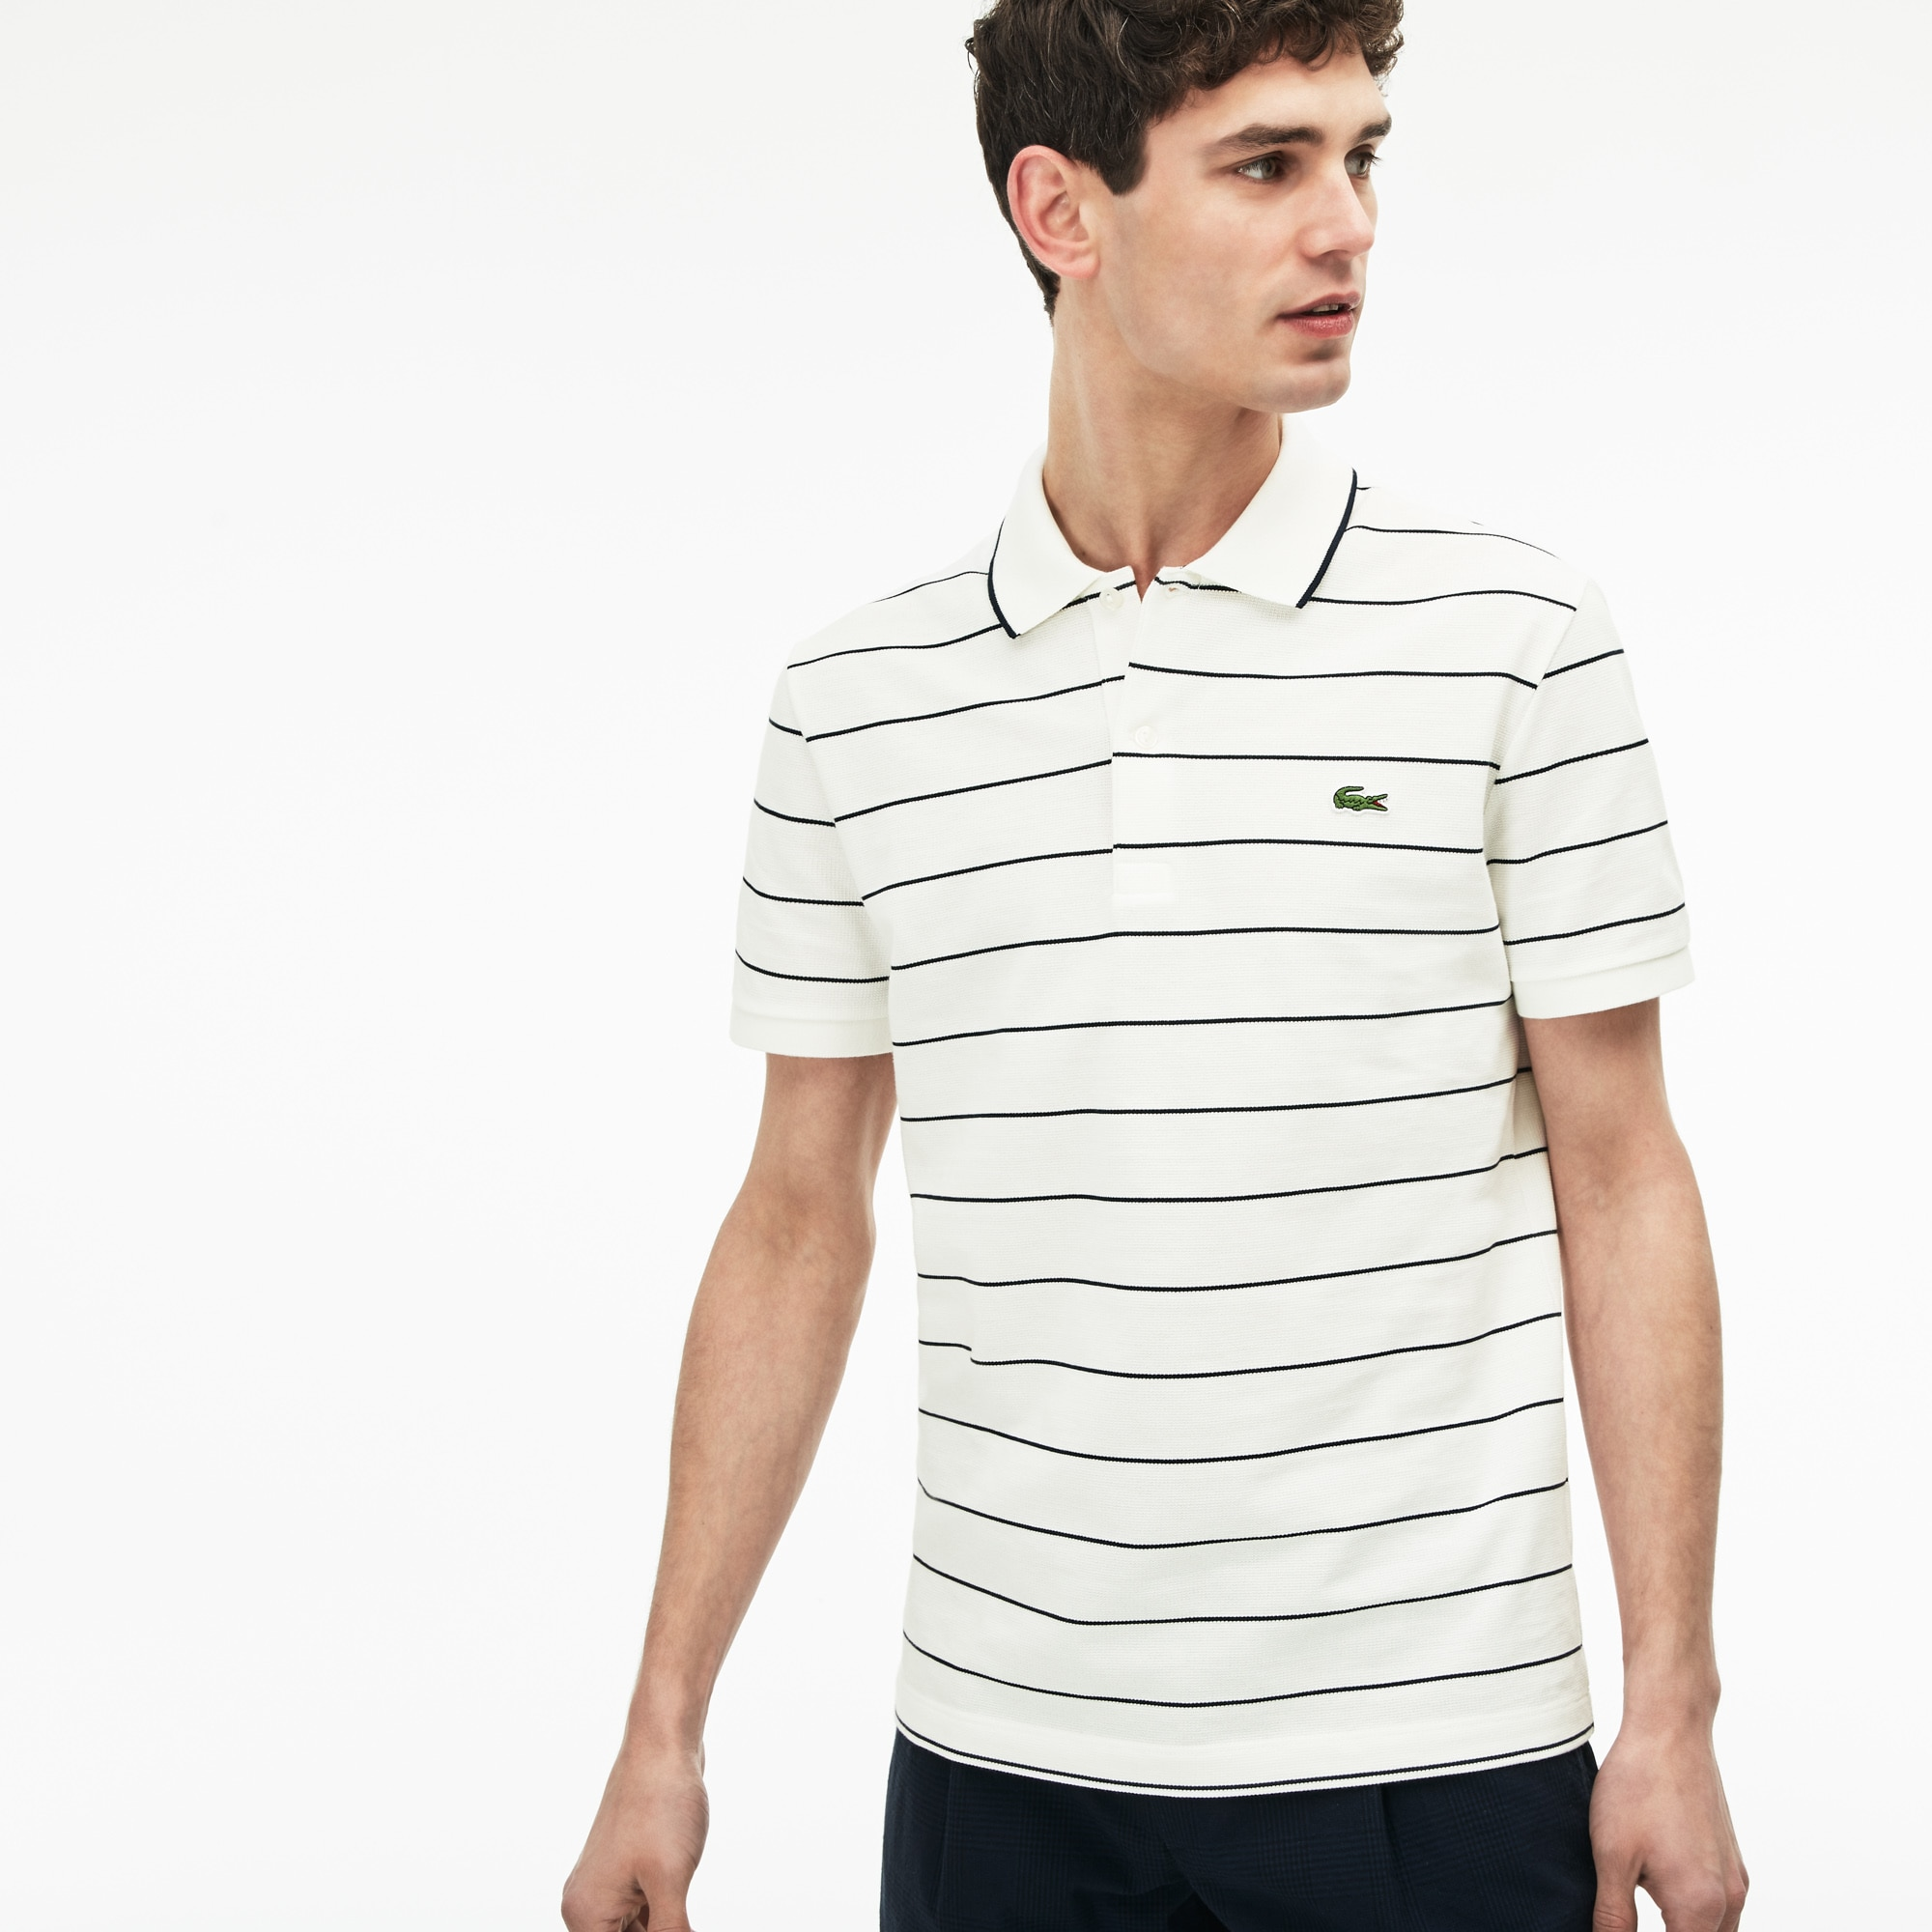 Polo slim fit Lacoste in maglia quadra e jersey a righe con bordino